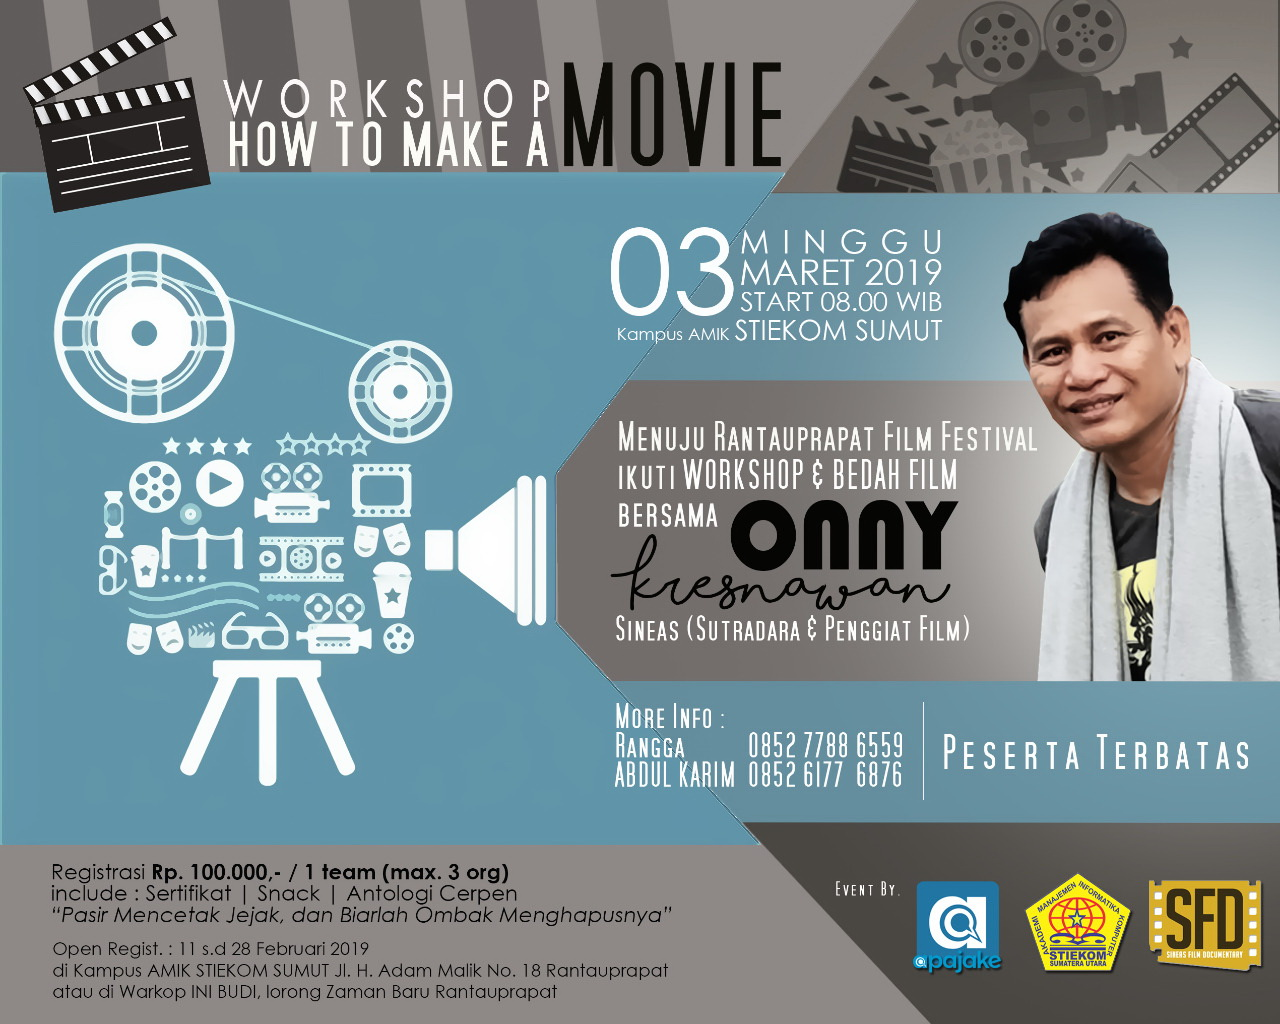 AMIK STIEKOM Sumatera Utara Bekerja Sama Dengan Apajake.Com Membuat Workshop Film: HOW TO MAKE A MOVIE